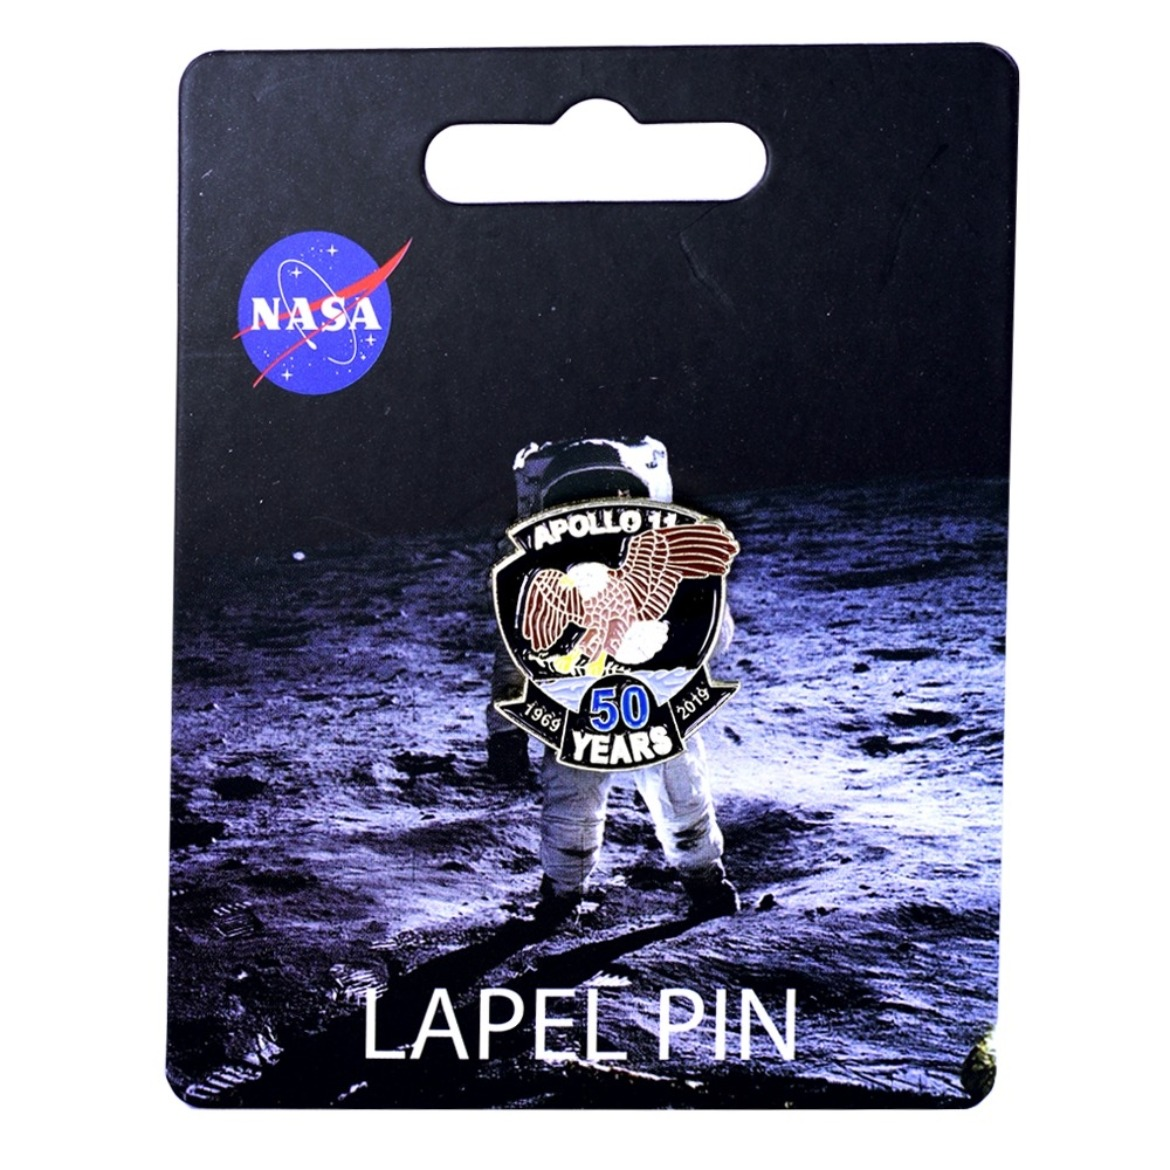 Genuine NASA Lapel Pin £3.50